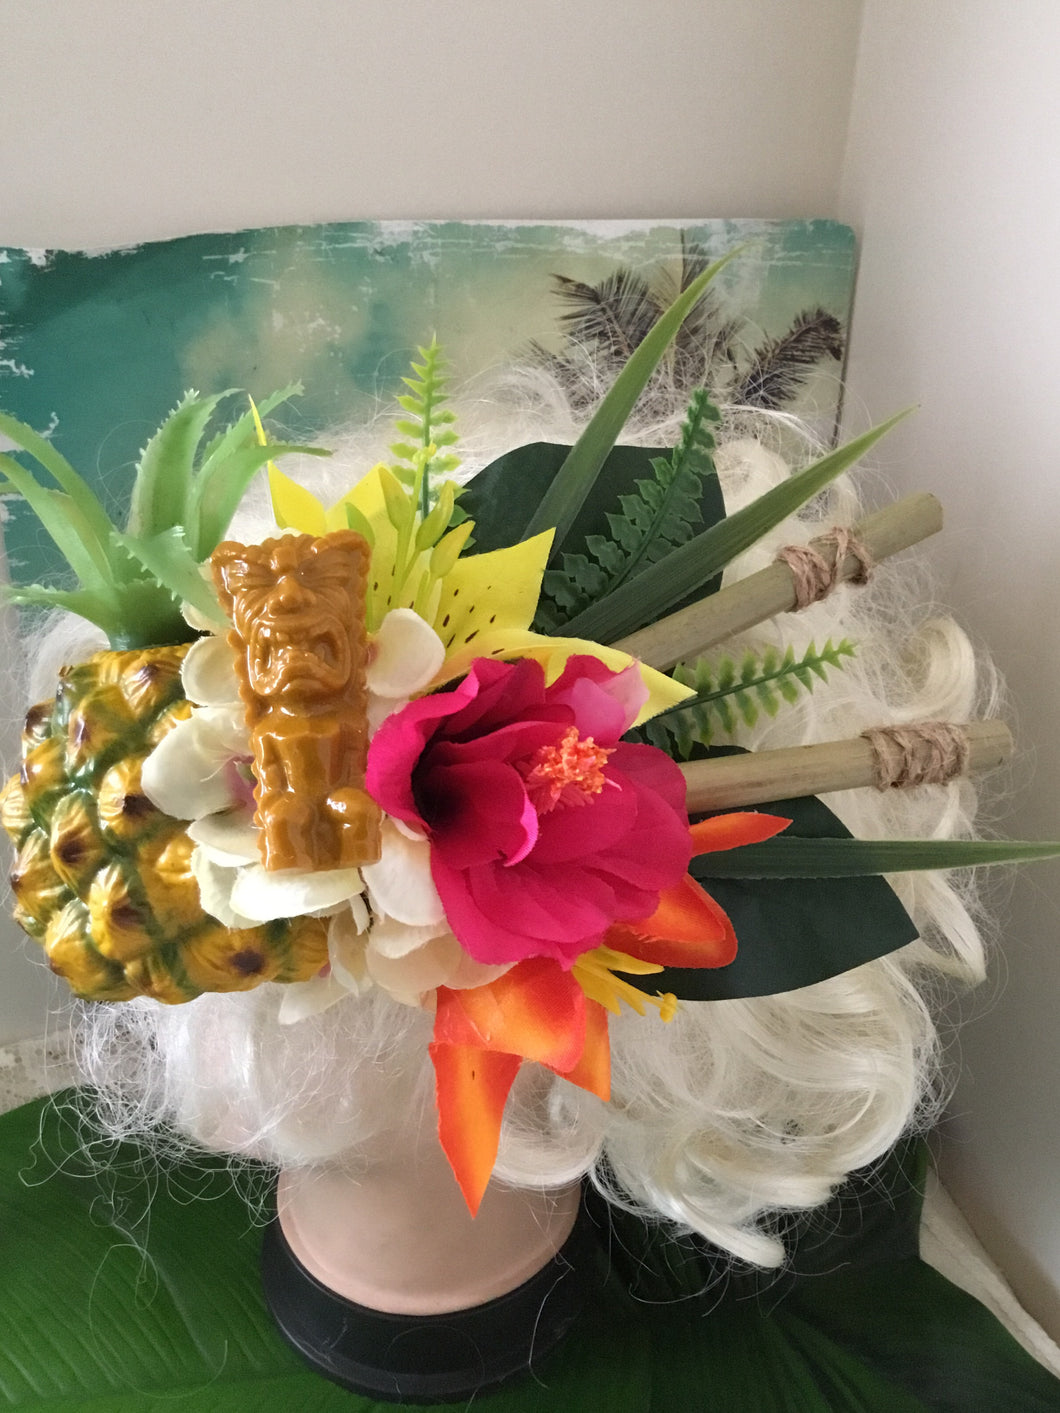 KANALOA - pineapple and tiki tropical cluster - with bamboo